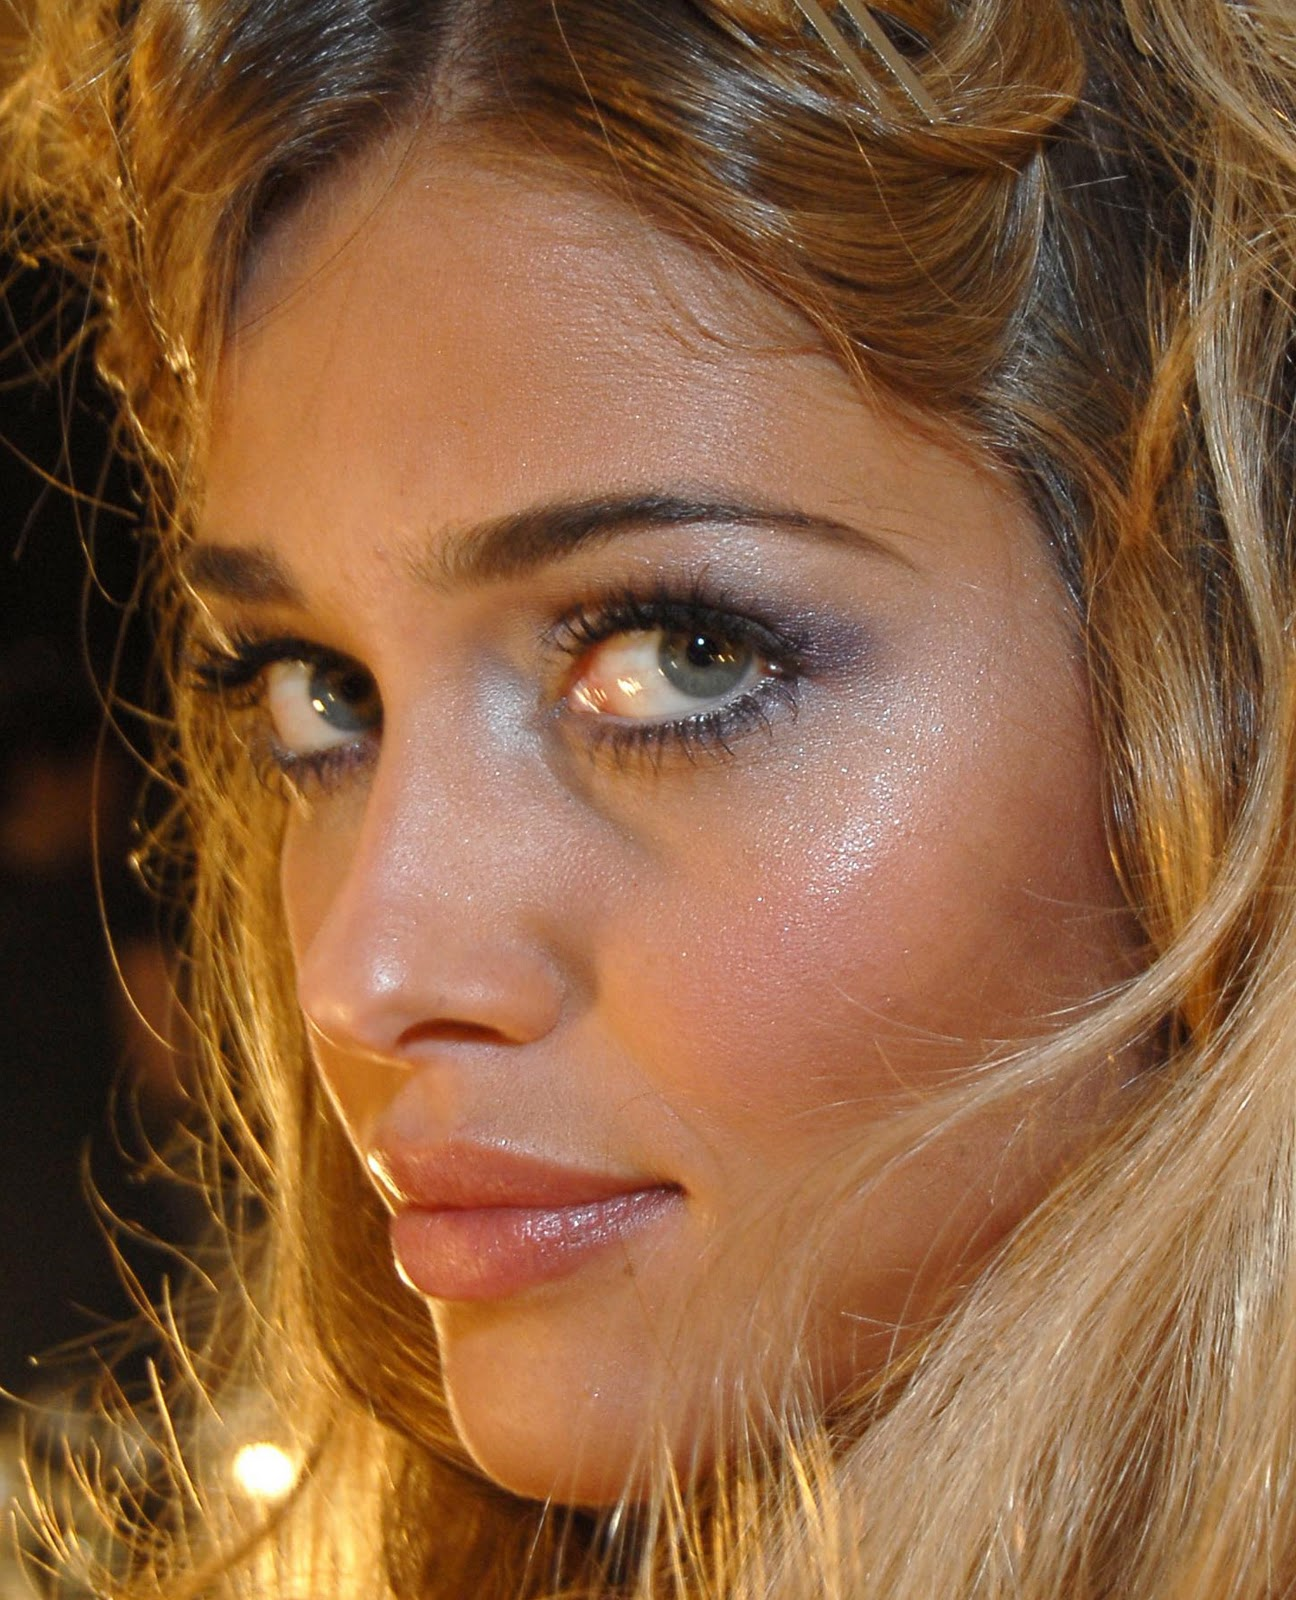 Pictures Ana Beatriz Barros naked (48 foto and video), Tits, Cleavage, Feet, braless 2020